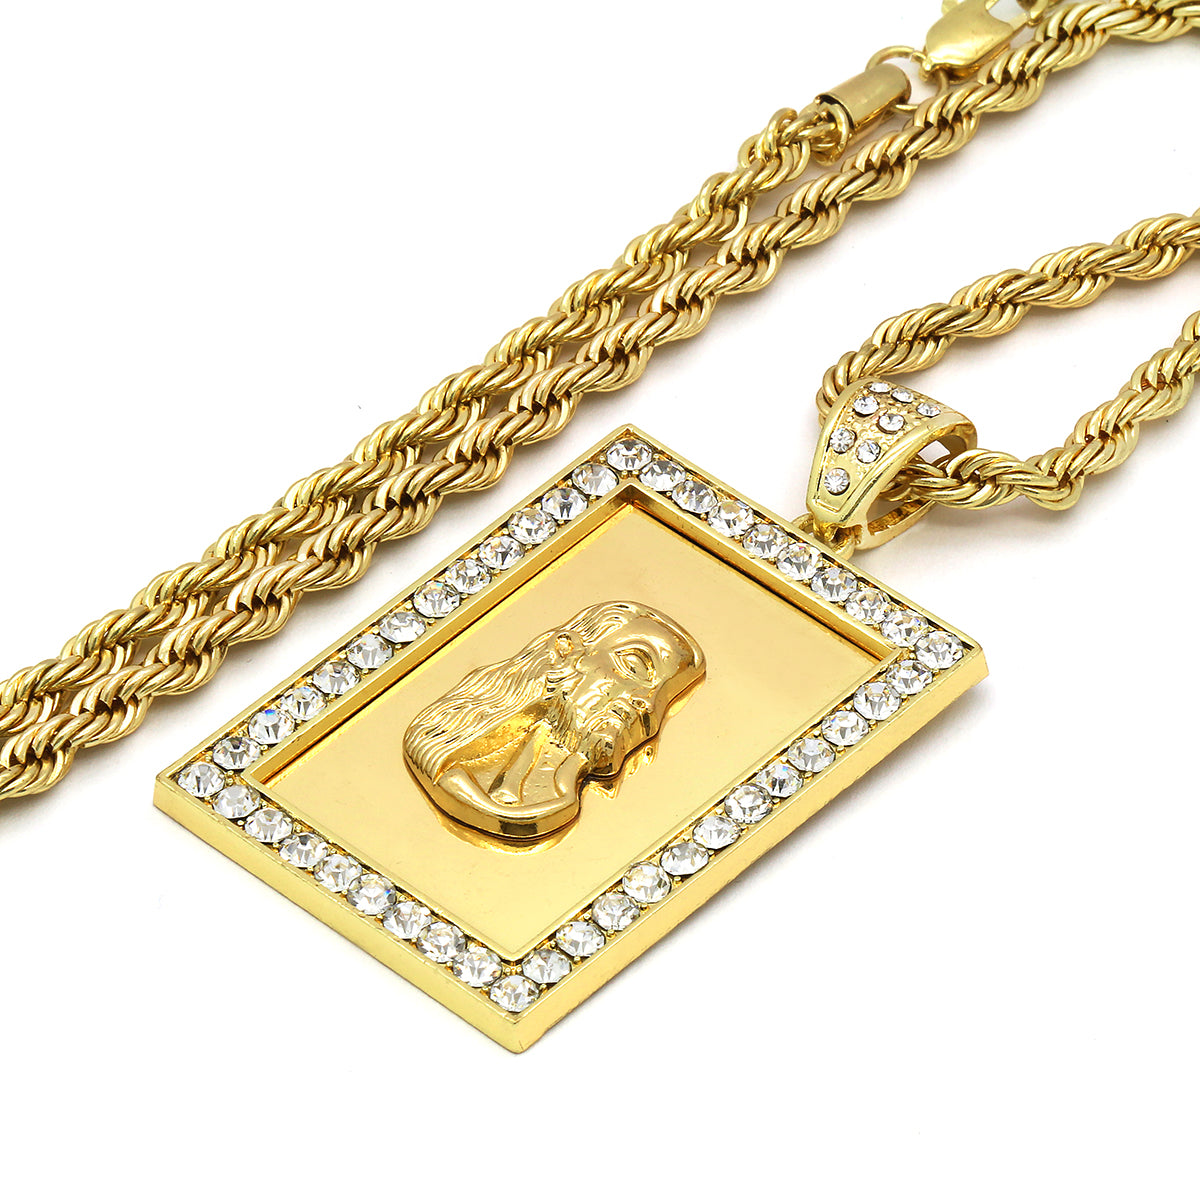 14k Gold Filled Fully Ice Out Square Mirror Jesus2 Pendant  with Rope Chain